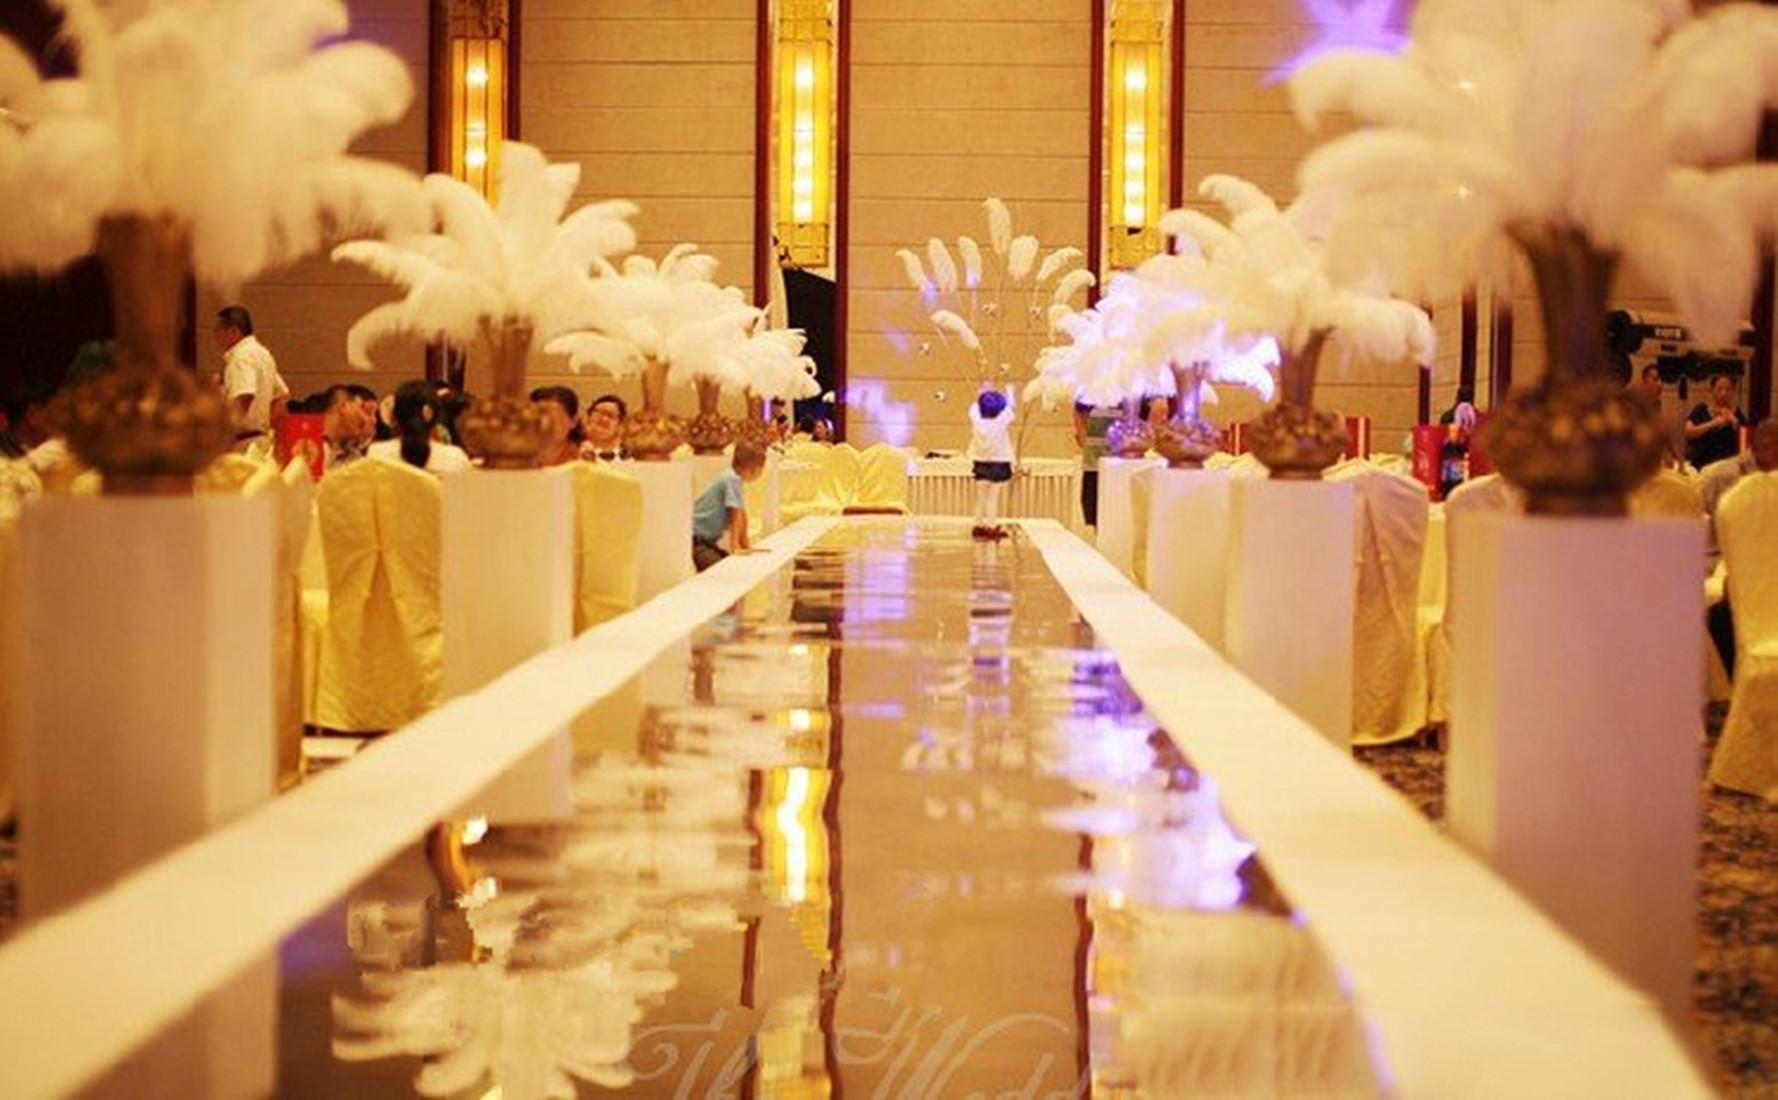 Emmani wholesale 18 20inch ostrich feather plumes ostrich feather emmani wholesale 18 20inch ostrich feather plumes ostrich feather white for wedding centerpiece decor party supply decor wedding decorations perth wedding junglespirit Choice Image